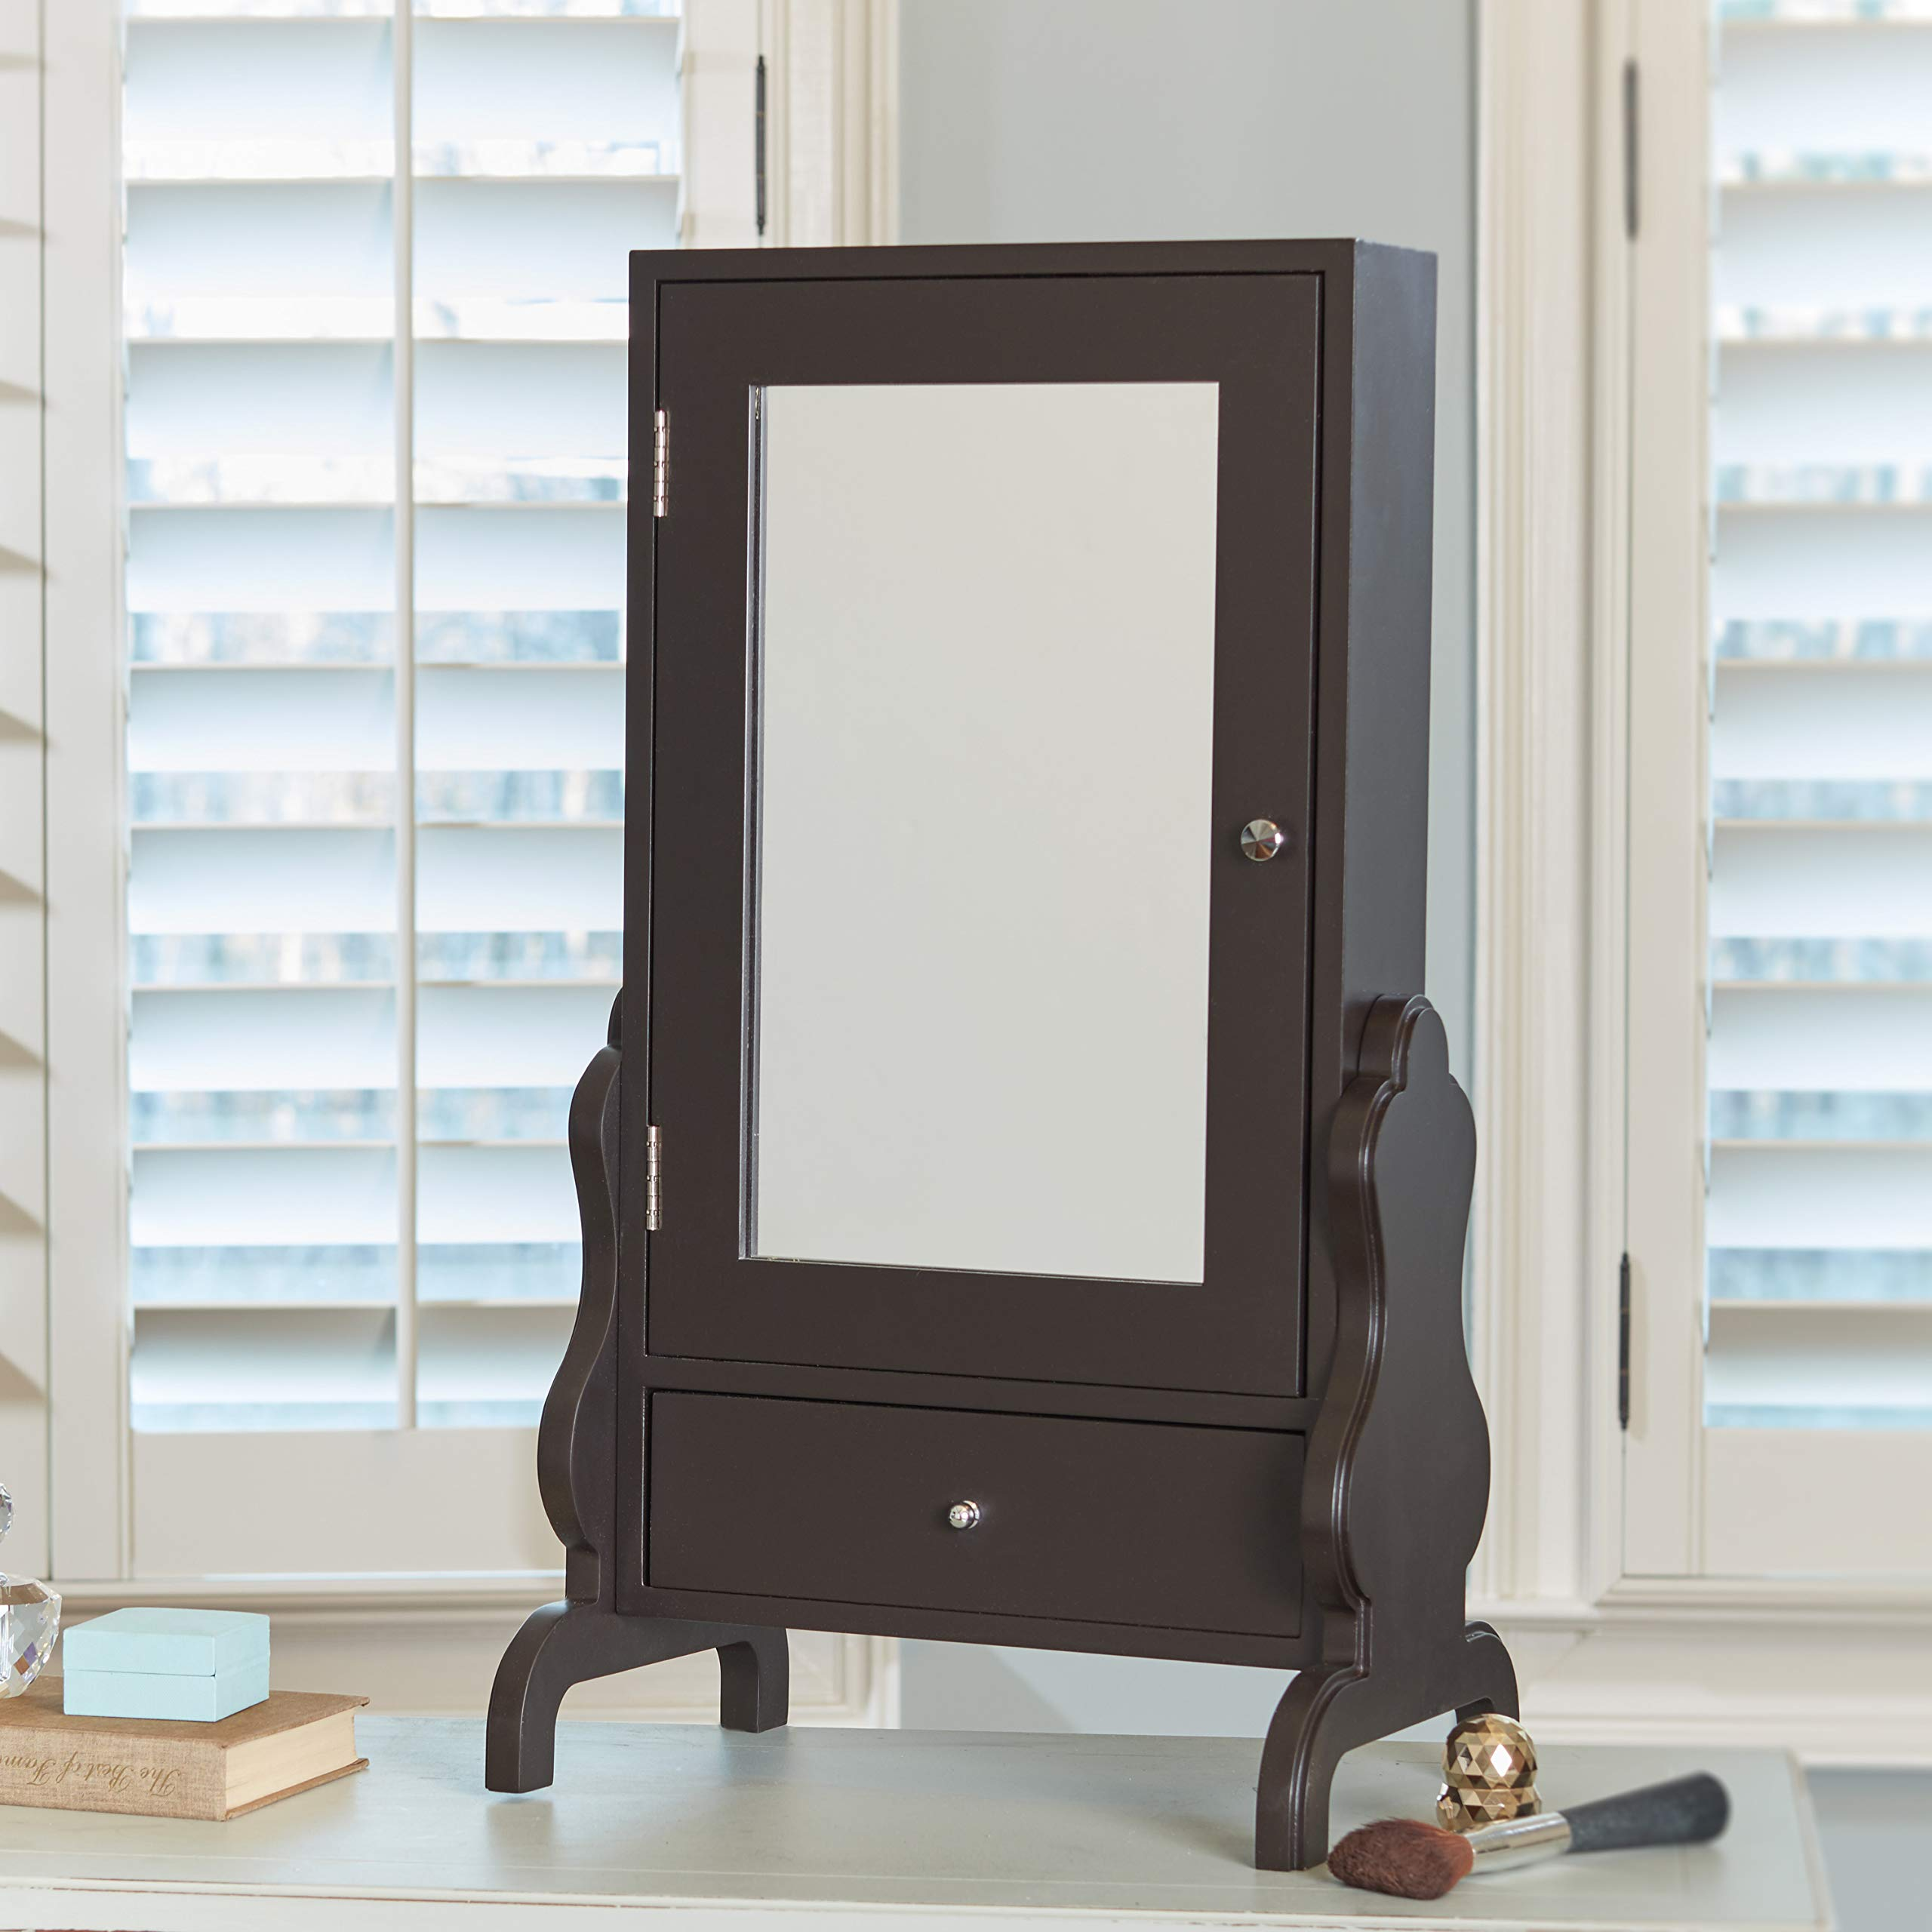 FirsTime & Co. Espresso Tabletop Mirror with Jewelry Storage